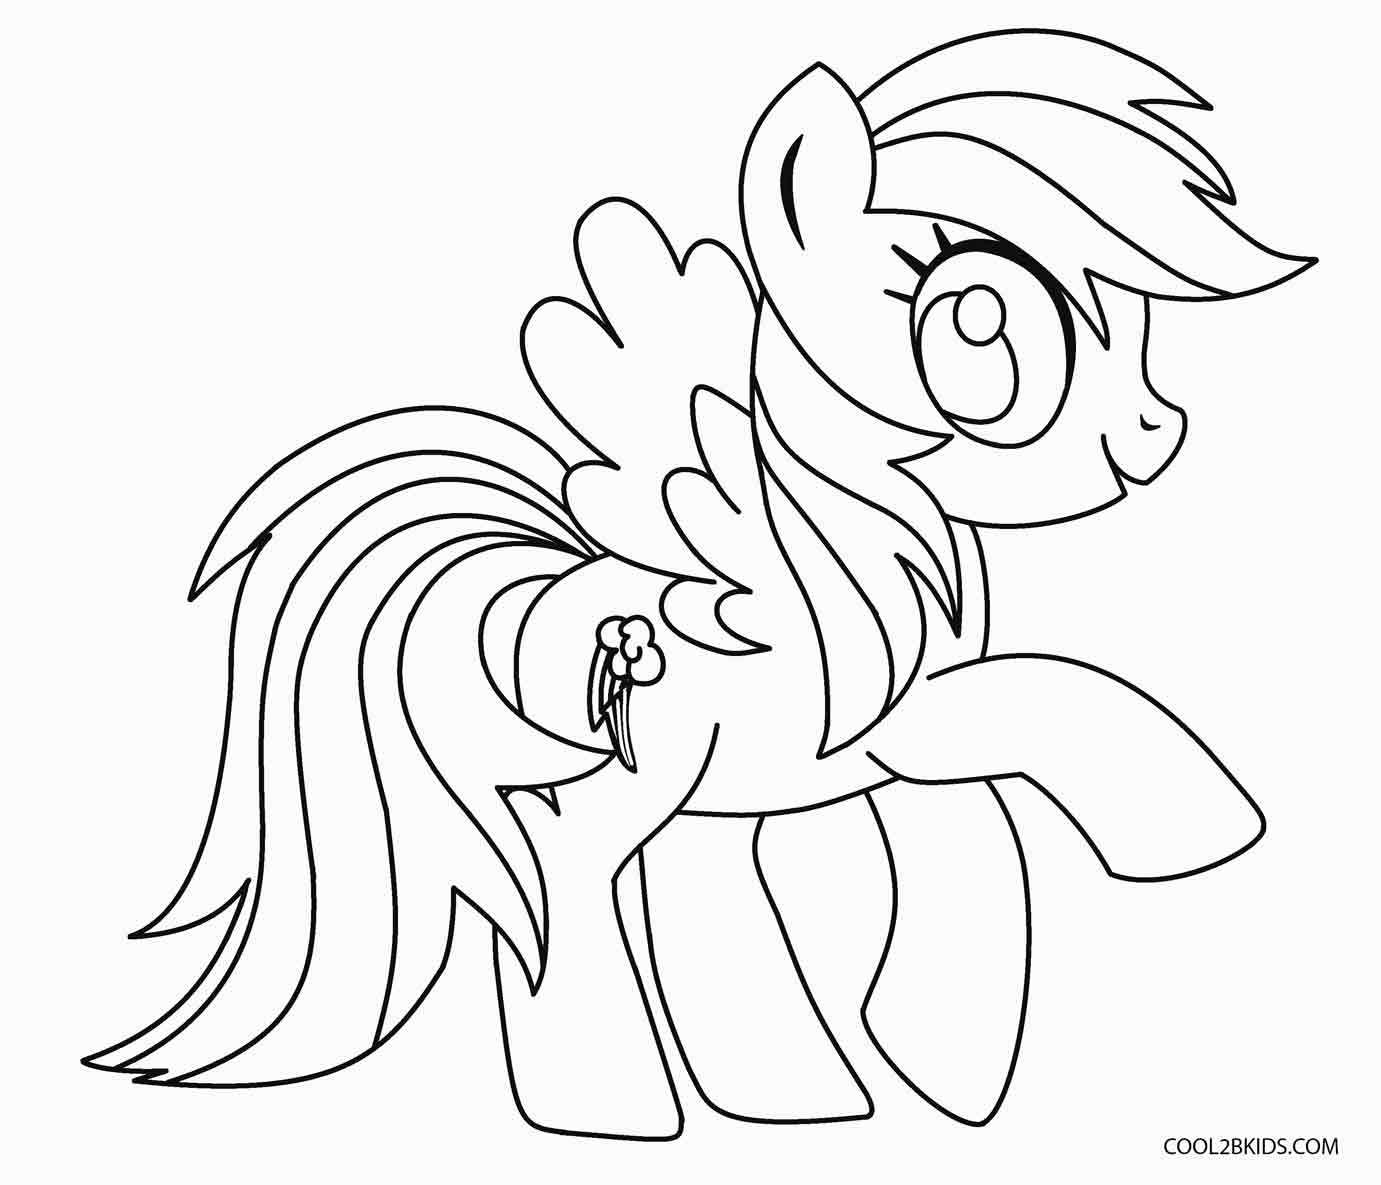 coloring pages for my little pony my little pony coloring pages print and colorcom pages little pony my for coloring